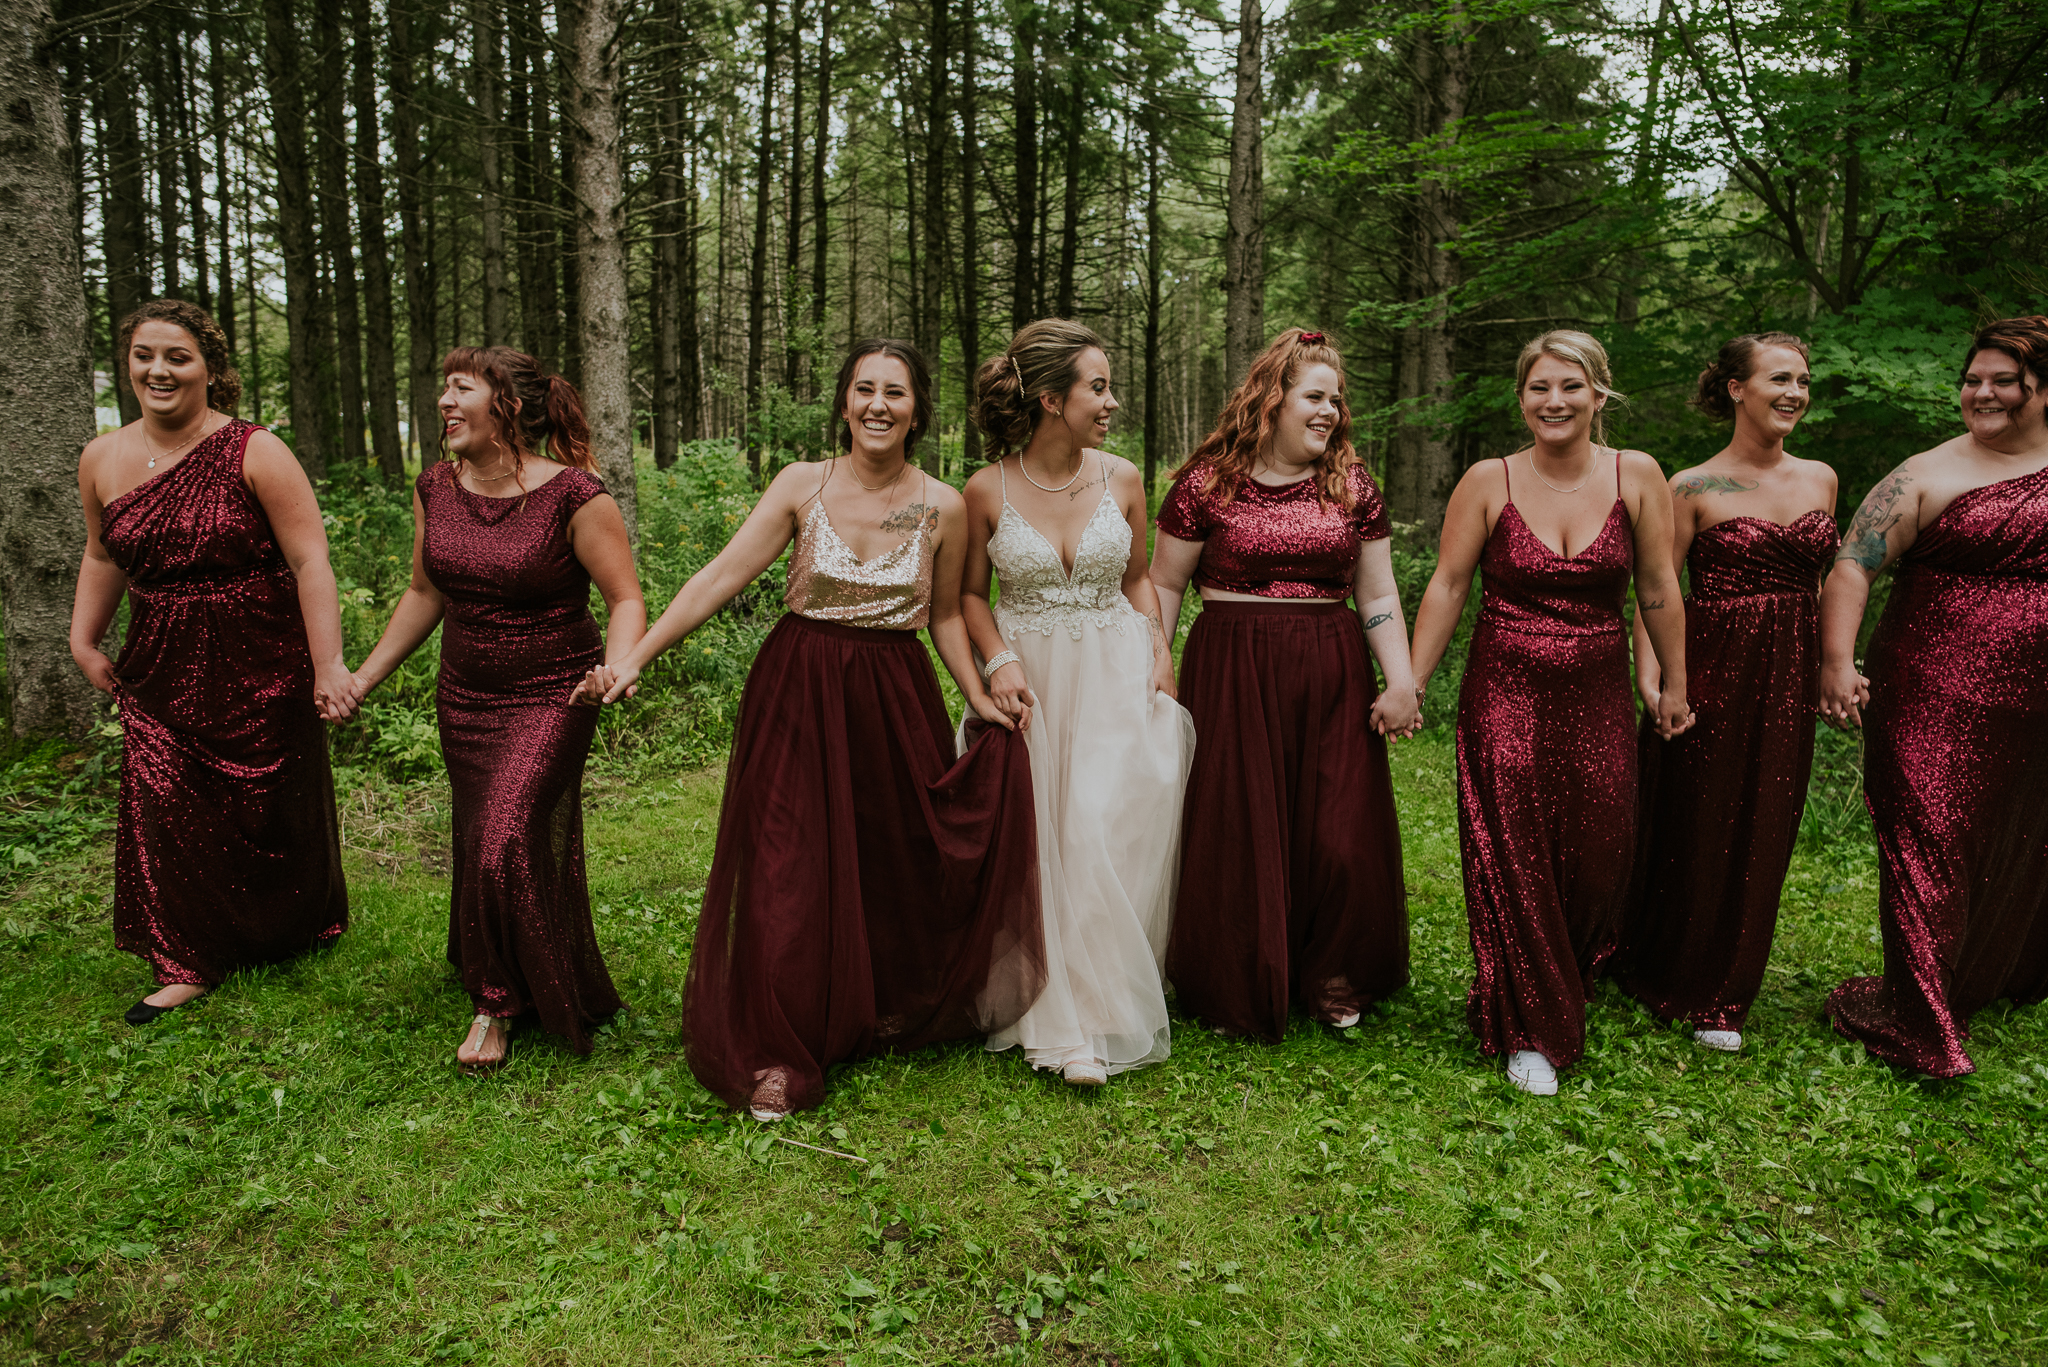 Wisconsin Wedding Photographer | Marshfield, WI | Miss Lyss Photography | www.misslyssphotography.com